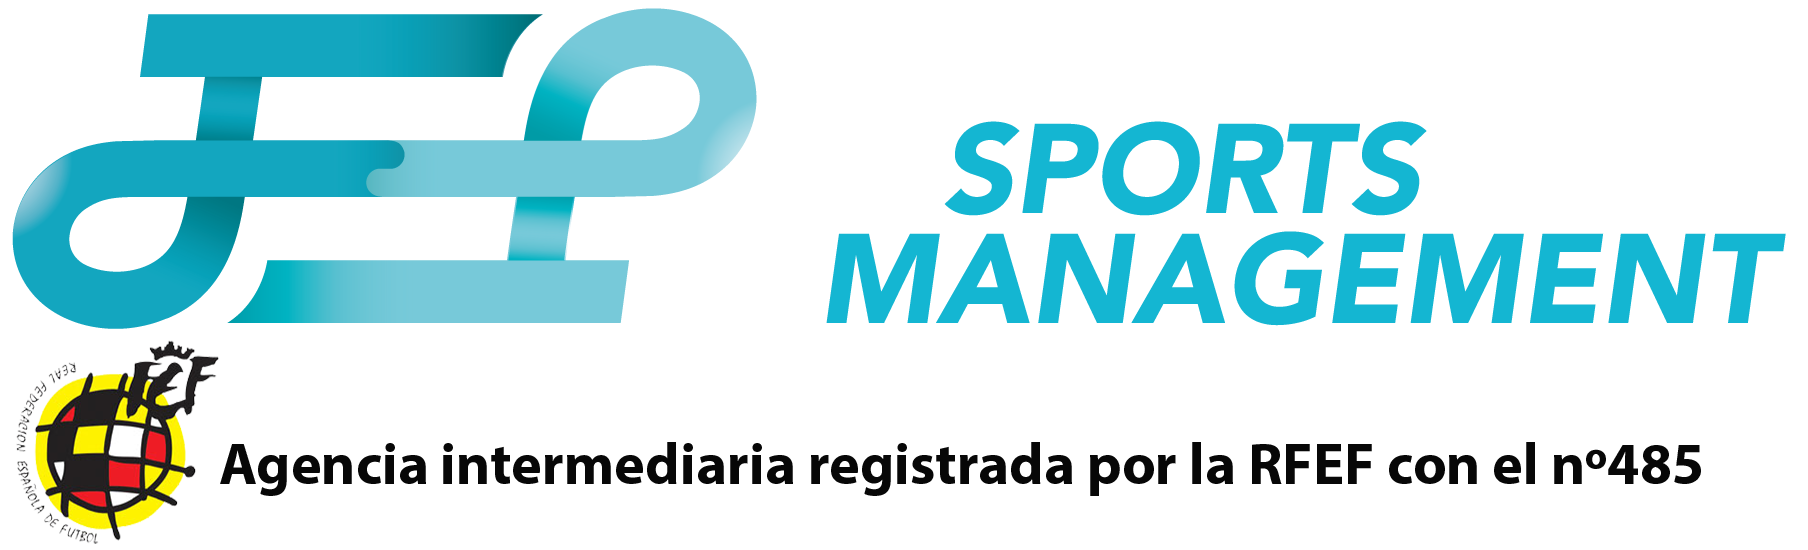 sports club management Iss is a leading sports club and organization management software company manage all day to day operations and exchange membership data electronically between organizations and member.